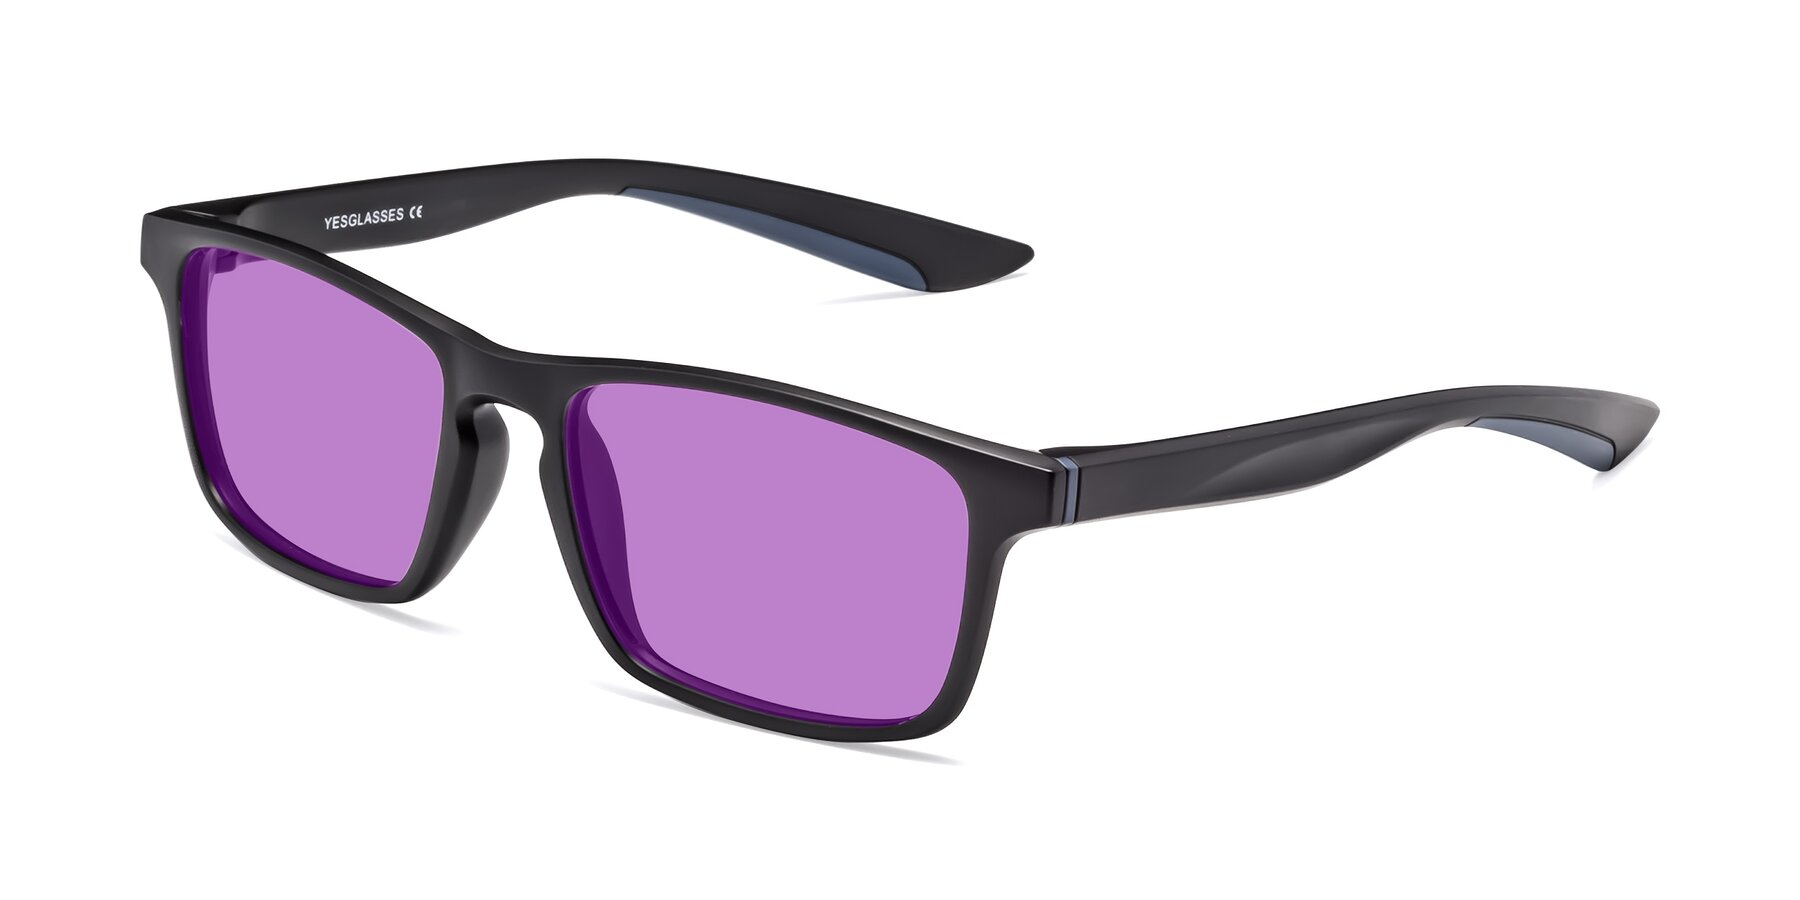 Angle of Passion in Matte Black-Blue with Medium Purple Tinted Lenses